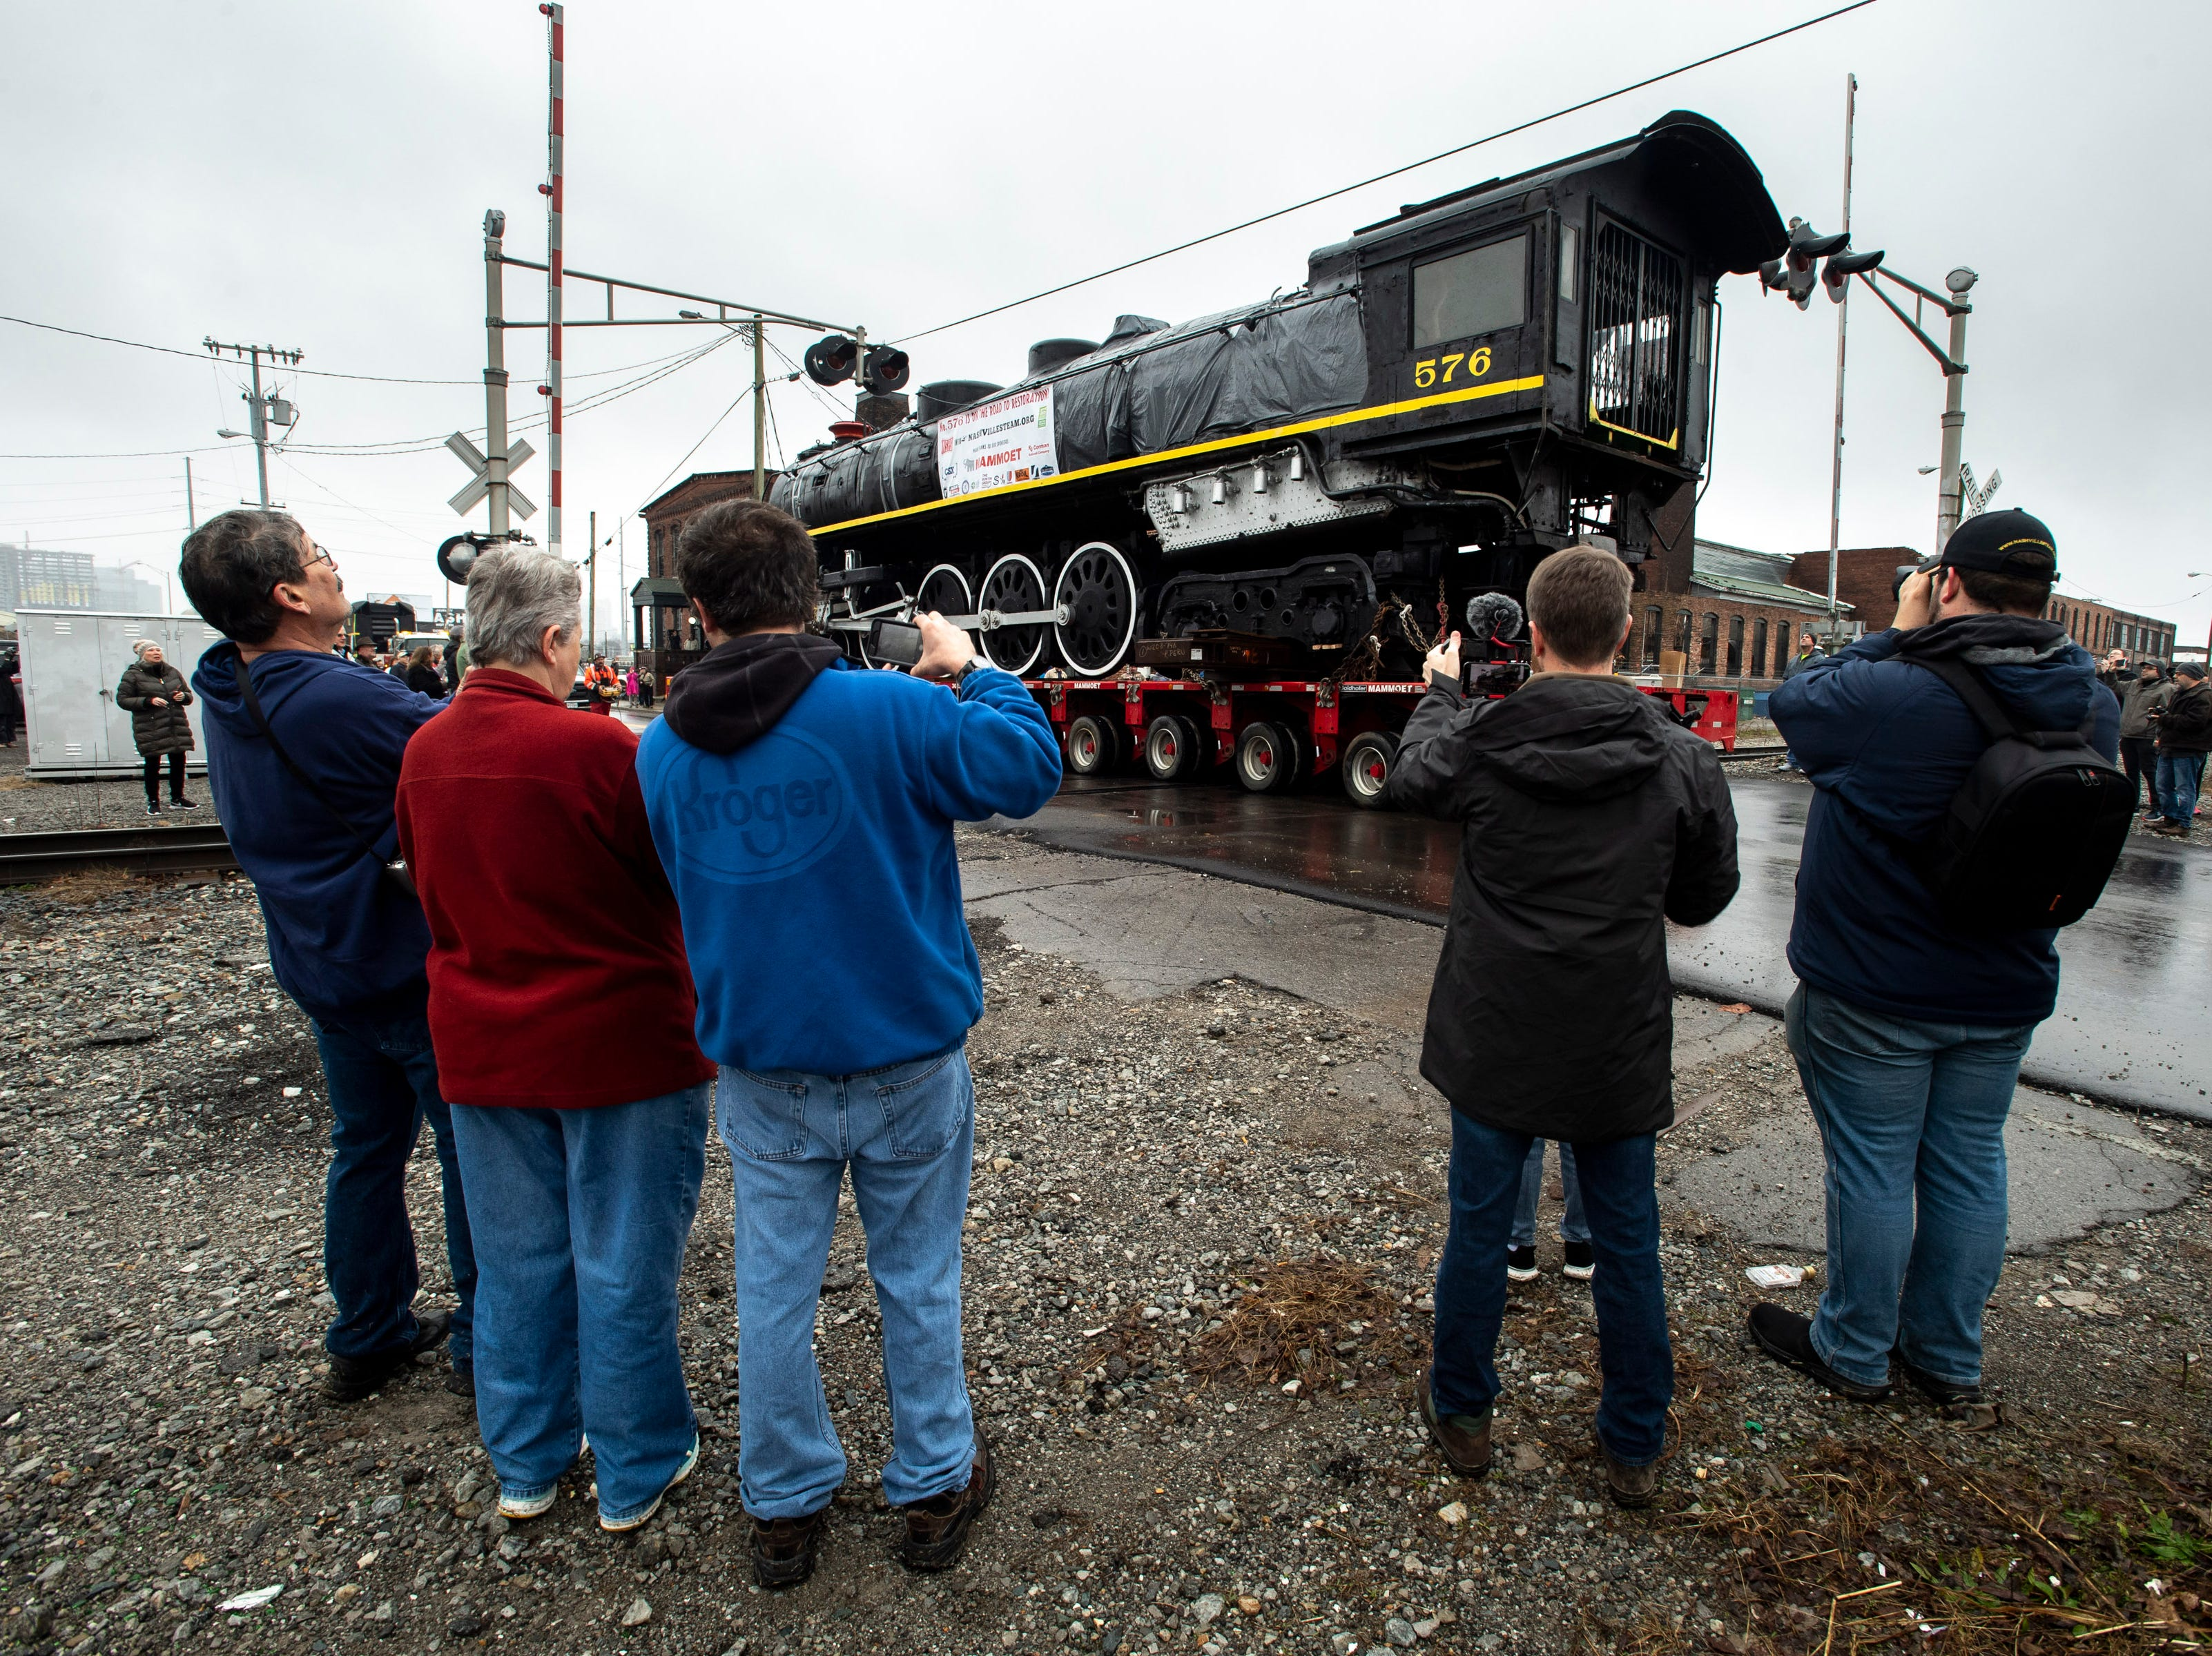 Spectators watch as former Nashville, Chattanooga & St. Louis Railway steam locomotive No. 576 is moved down 12th Ave. North in Nashville, Tenn., Sunday, Jan. 13, 2019. The train, which will be restored to working condition over approximately four years, has been on display in Centennial Park since 1953.